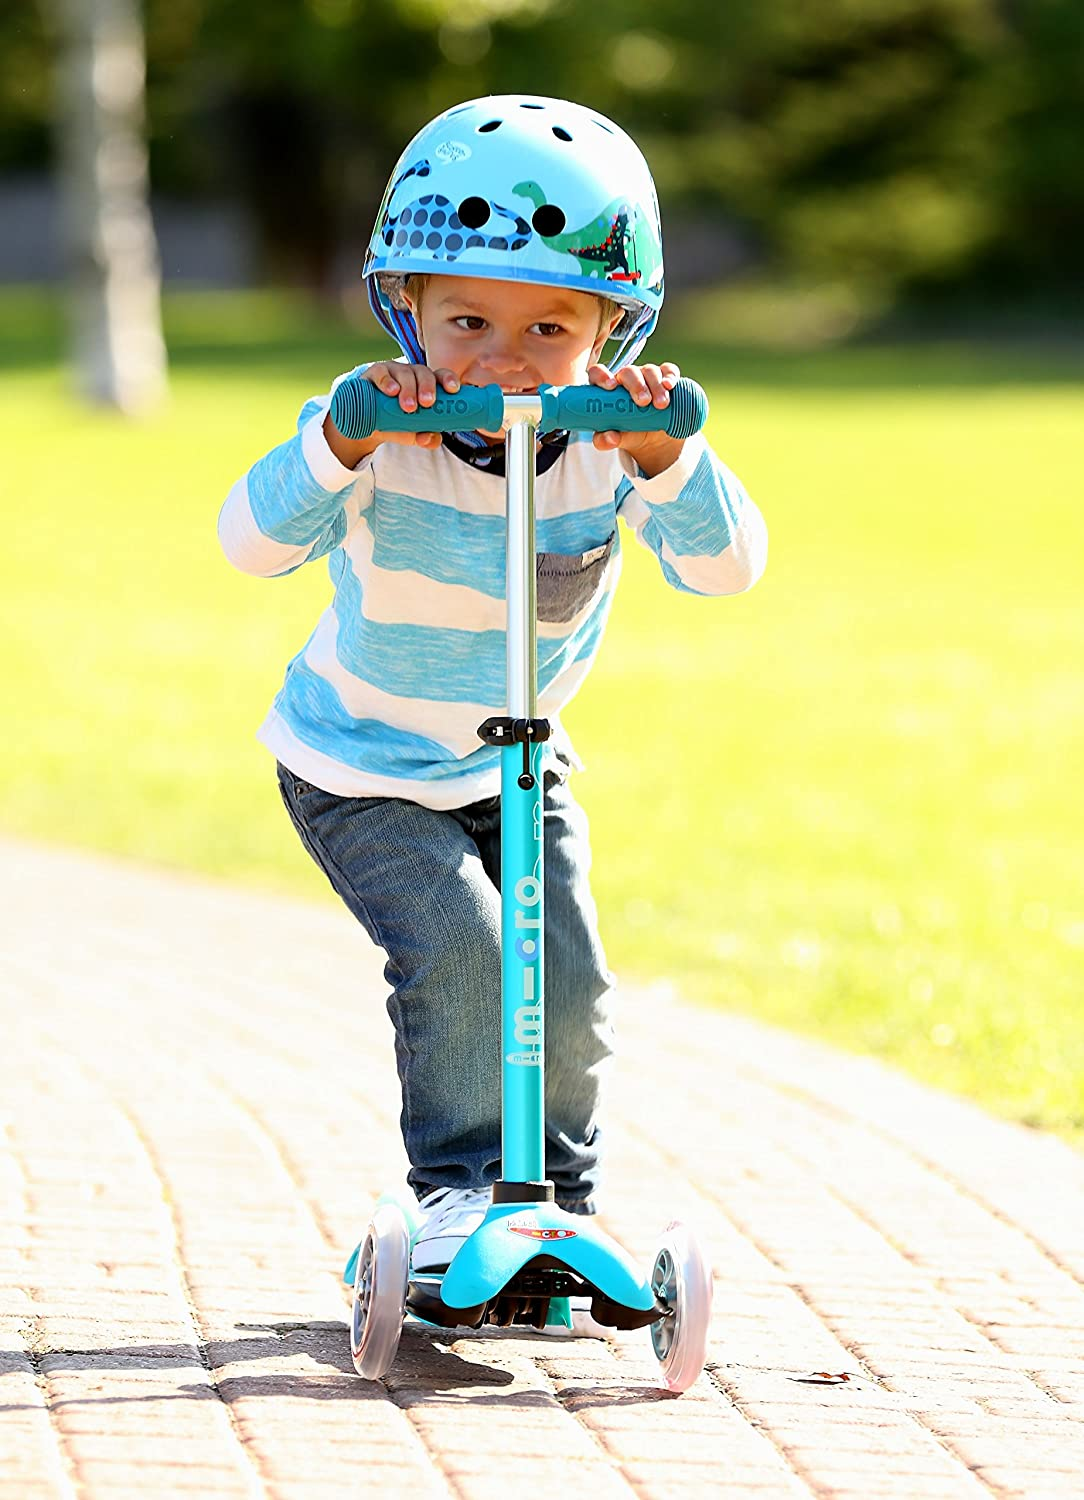 Mini Deluxe 3-Wheeled, Lean-to-Steer, Swiss-Designed Micro Scooter for Kids, Ages 2-5